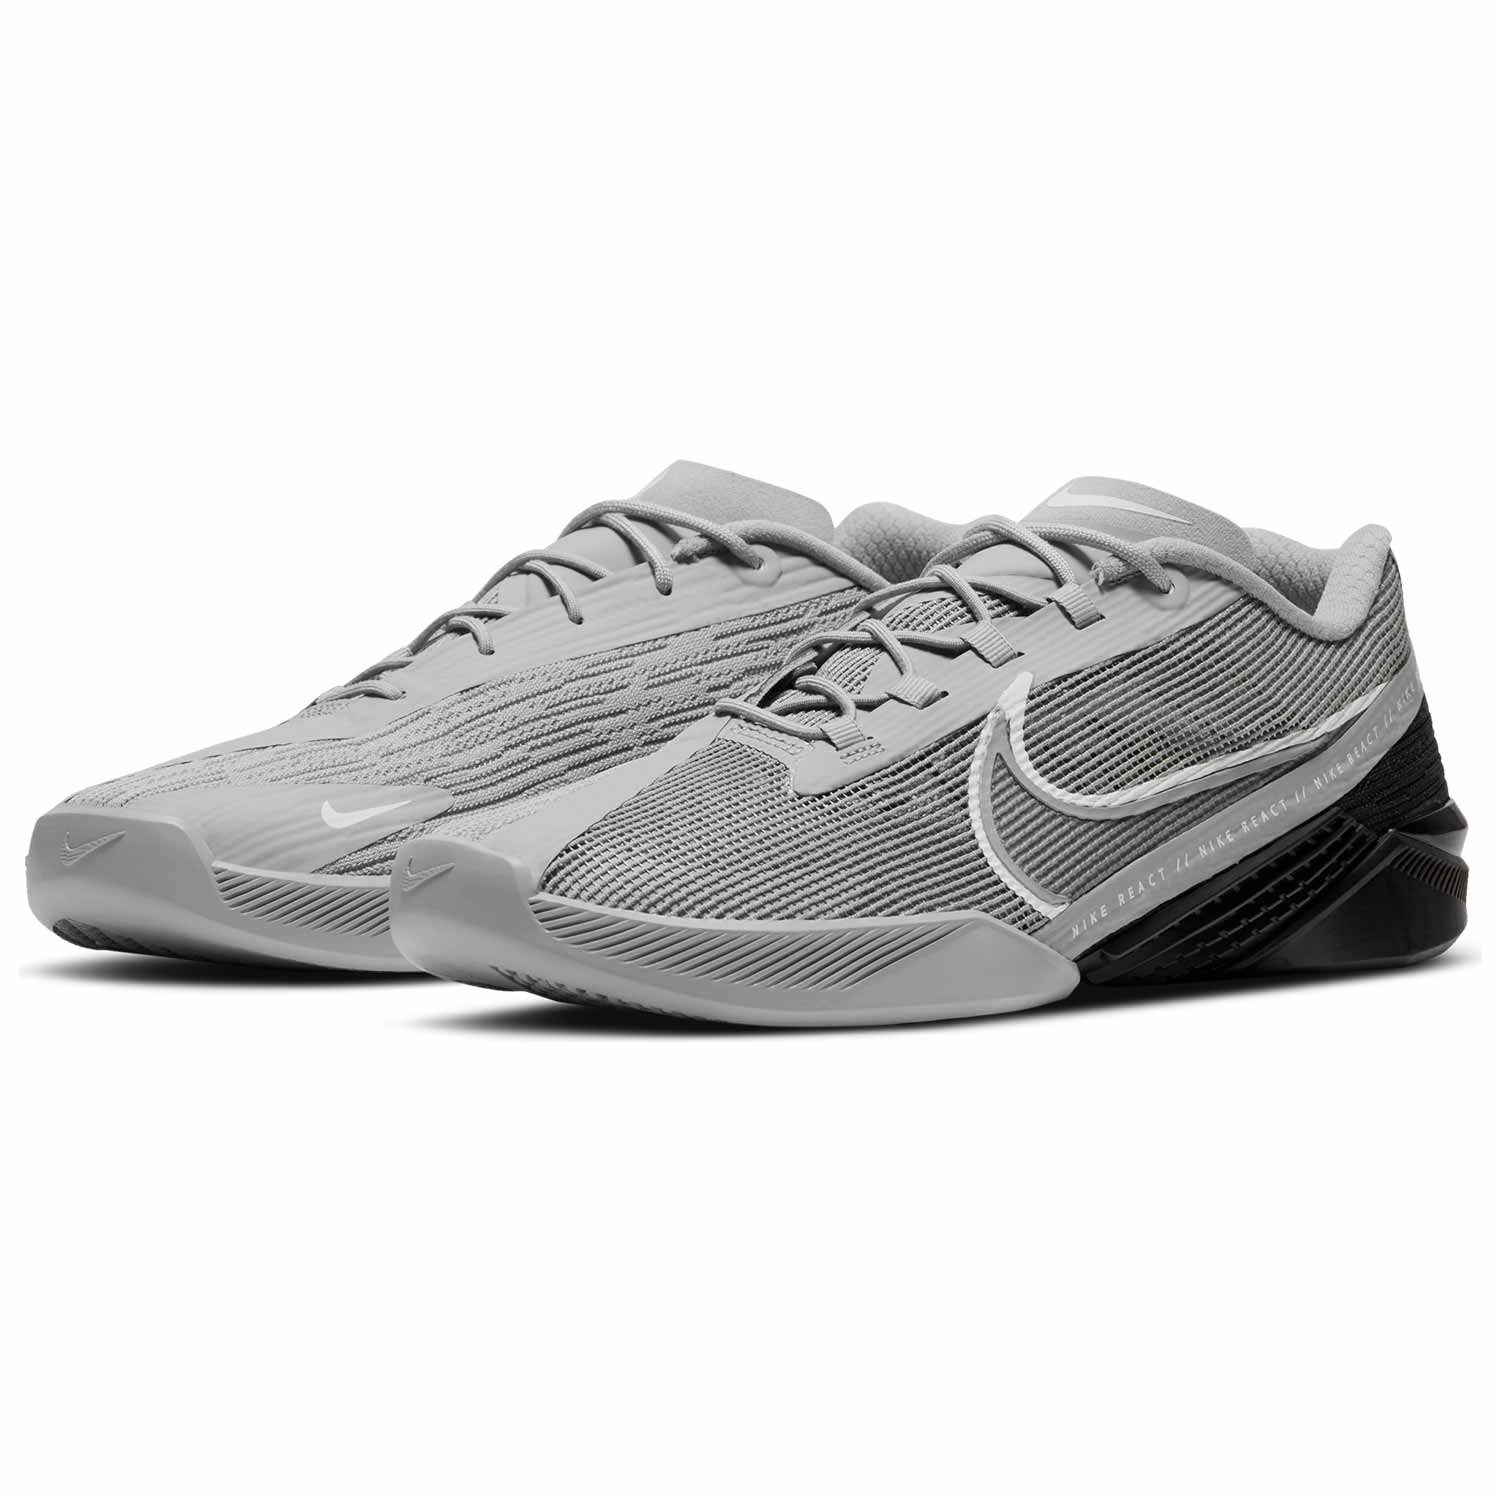 NIKE METCON REACT TURBOTraining shoes